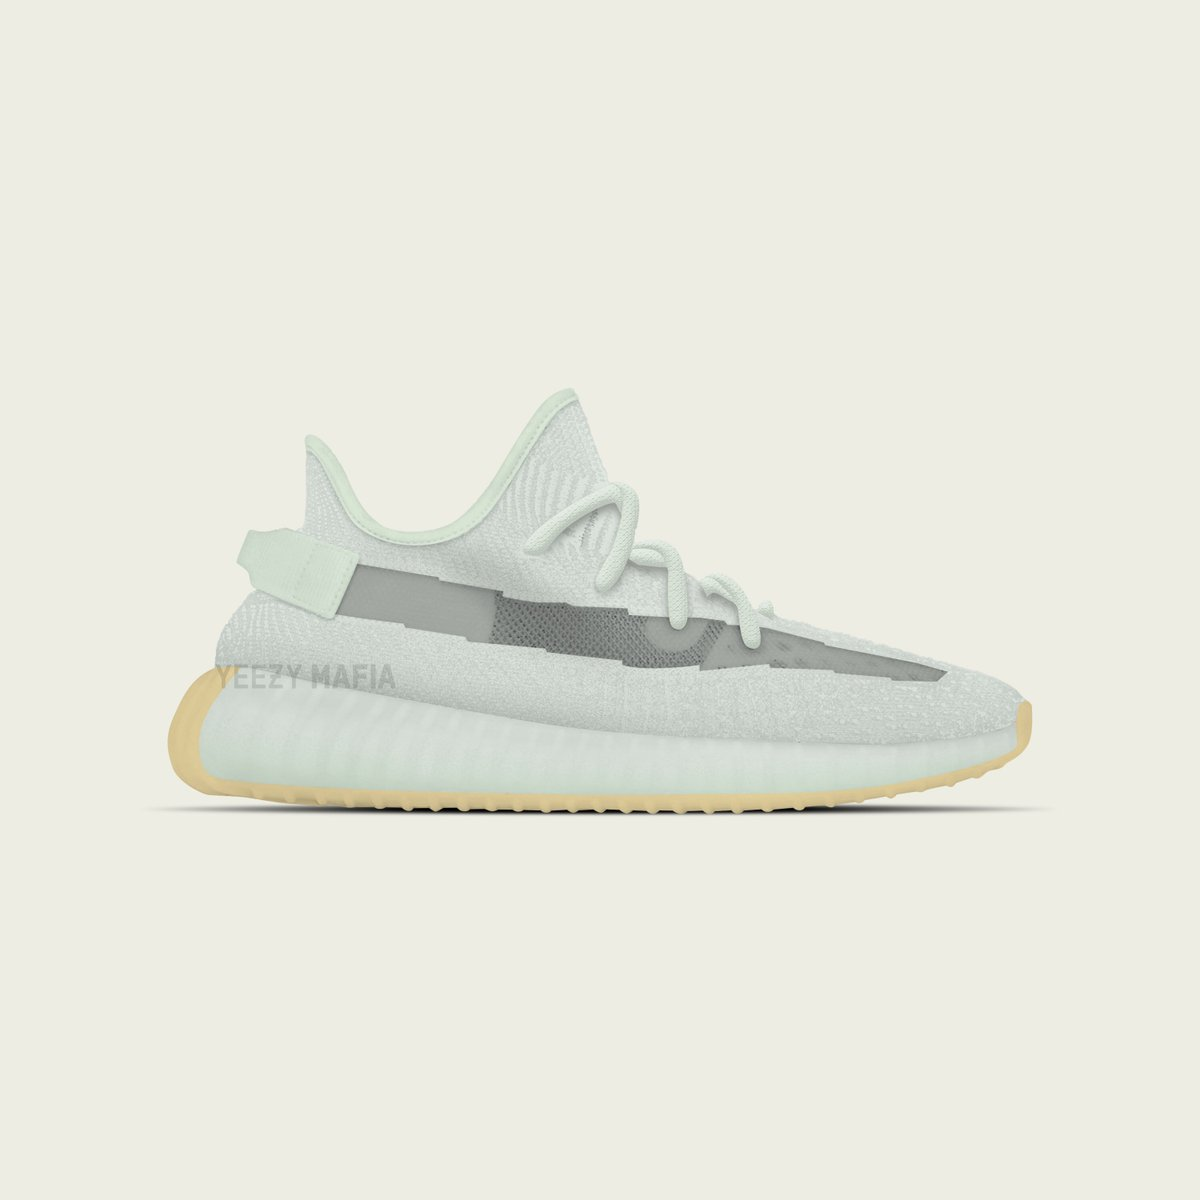 Adidas Yeezy Boost 350 V2 Hyperspace - World Wide Drip